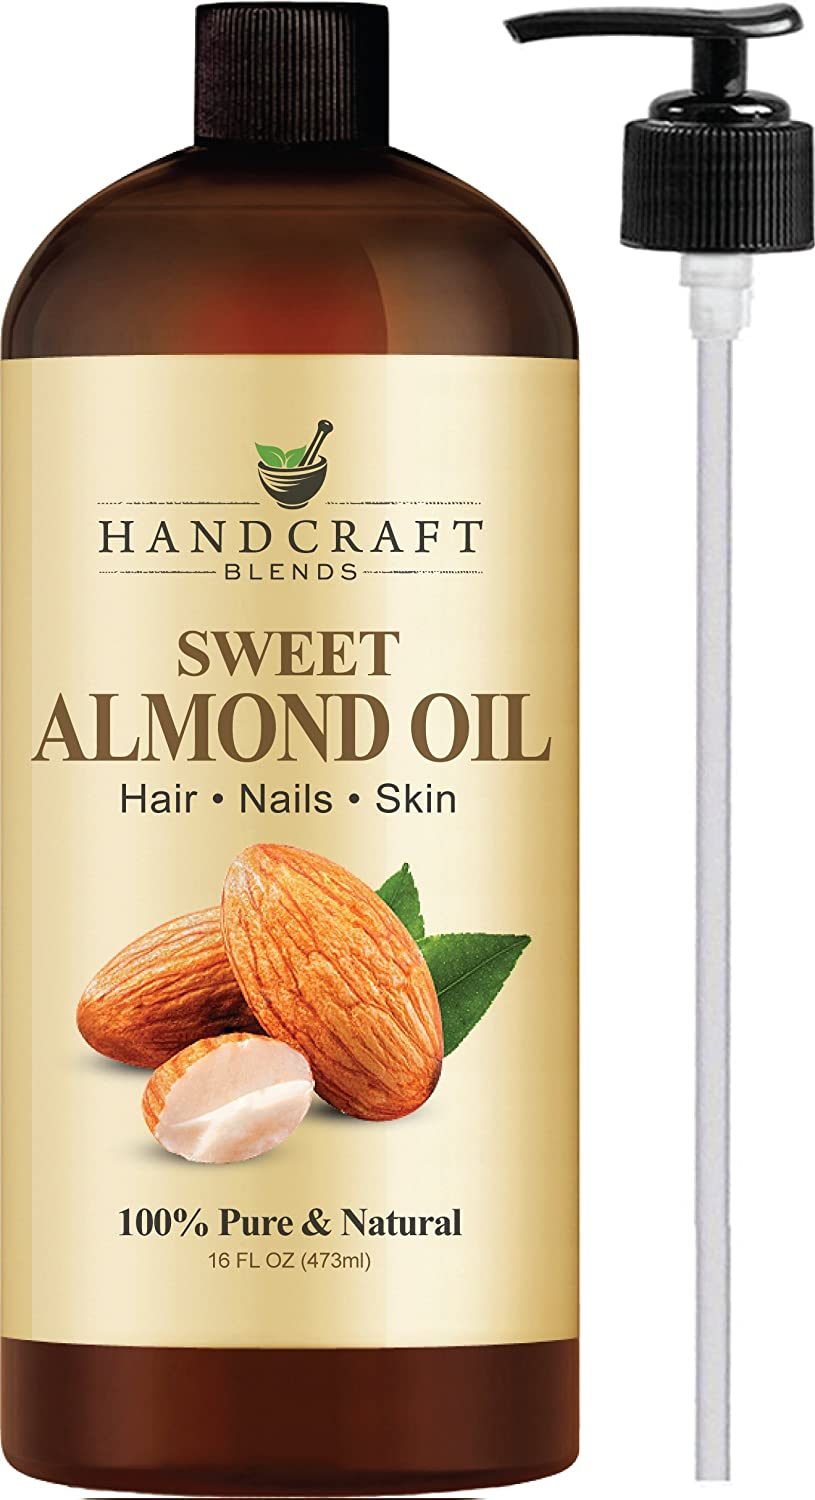 Handcraft Pure Sweet Almond Oil